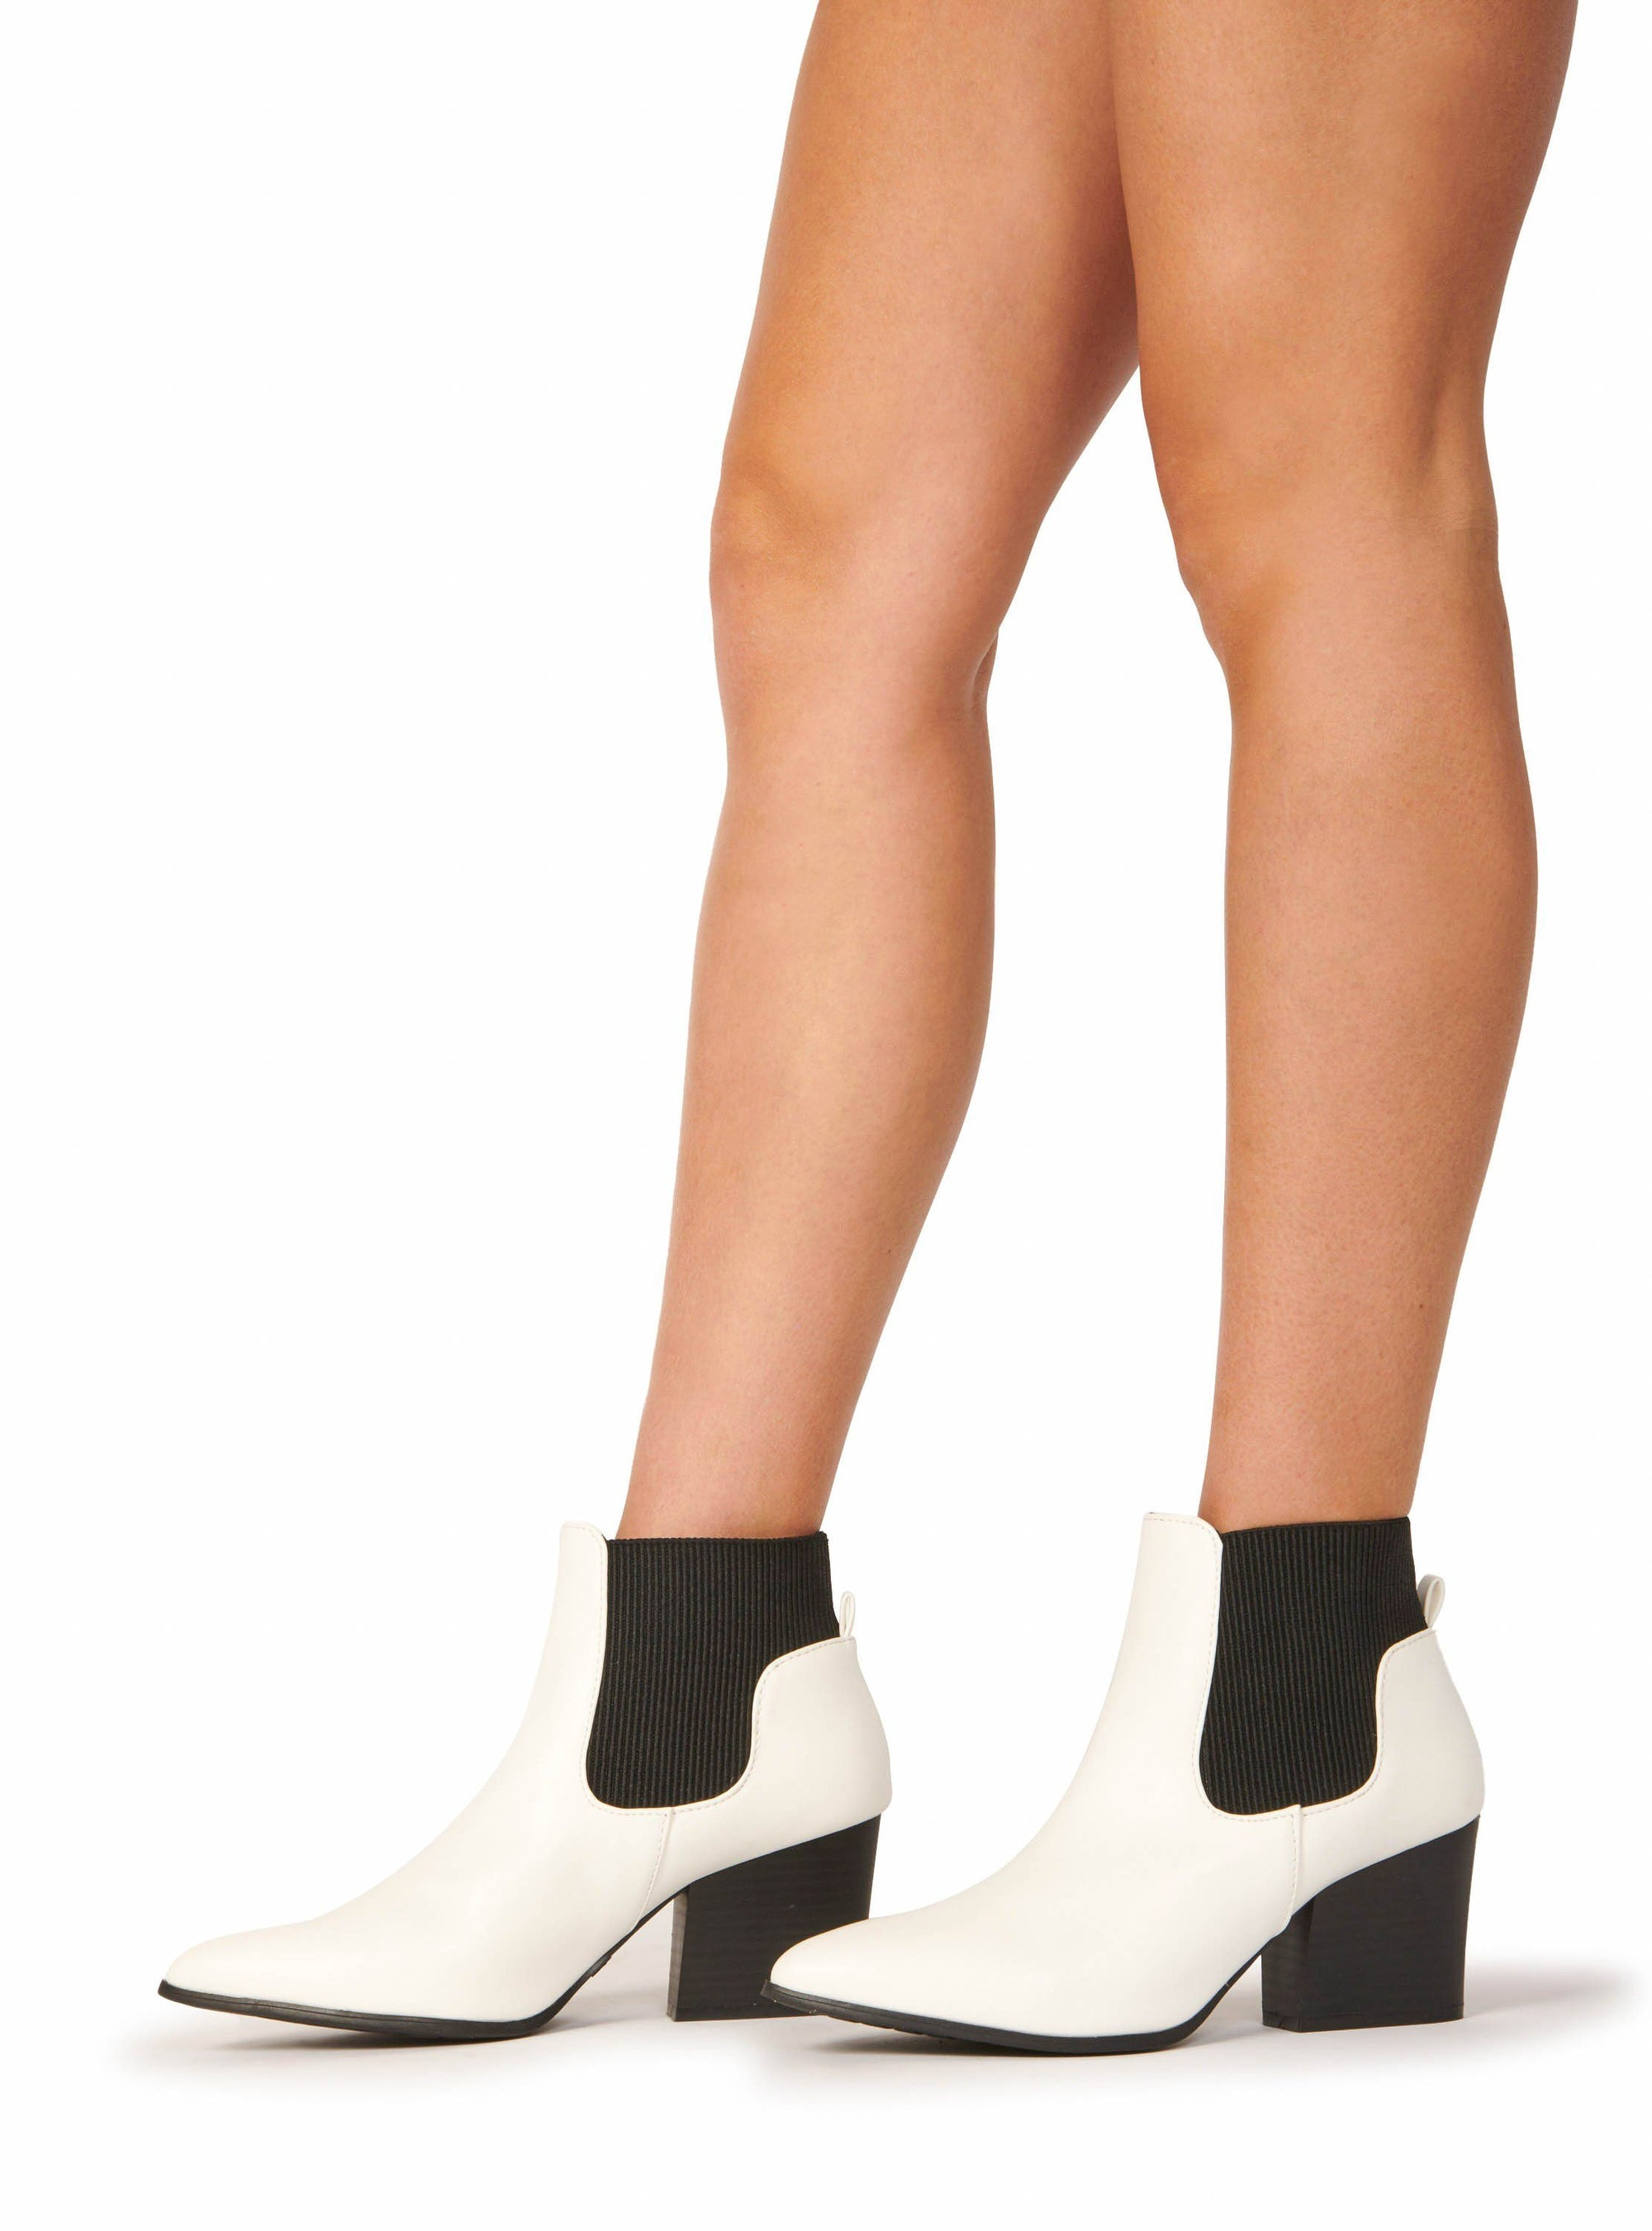 Faux Leather Pointed Toe Block Heel Booties White Shoes HYPEACH BOUTIQUE